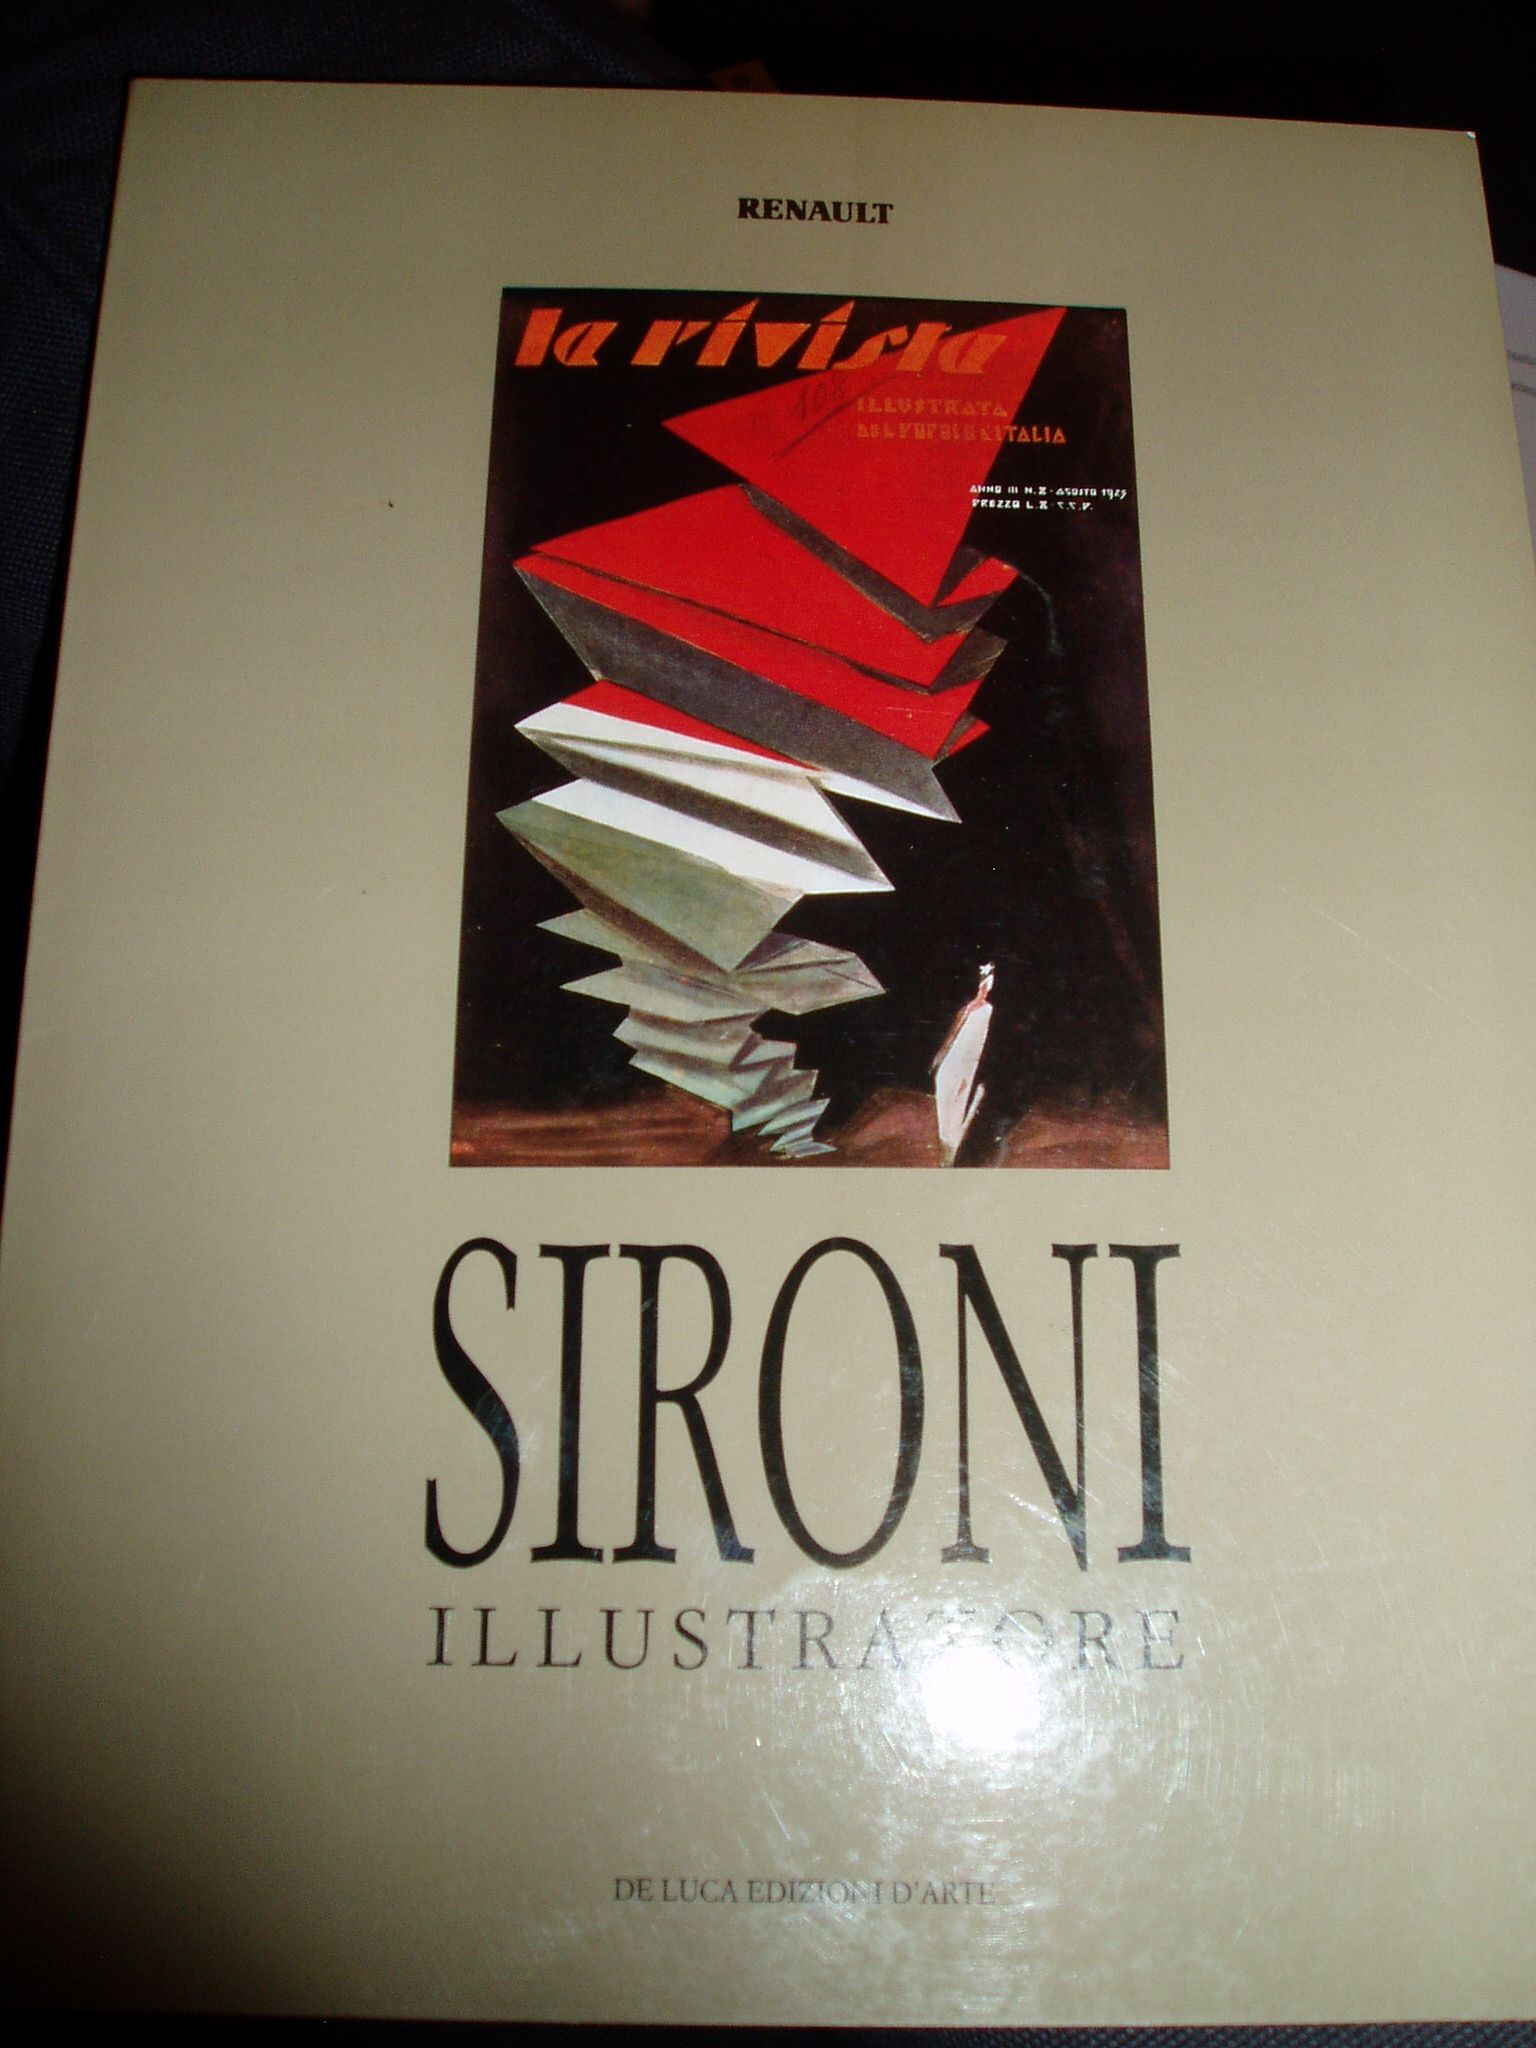 Sironi illustratore